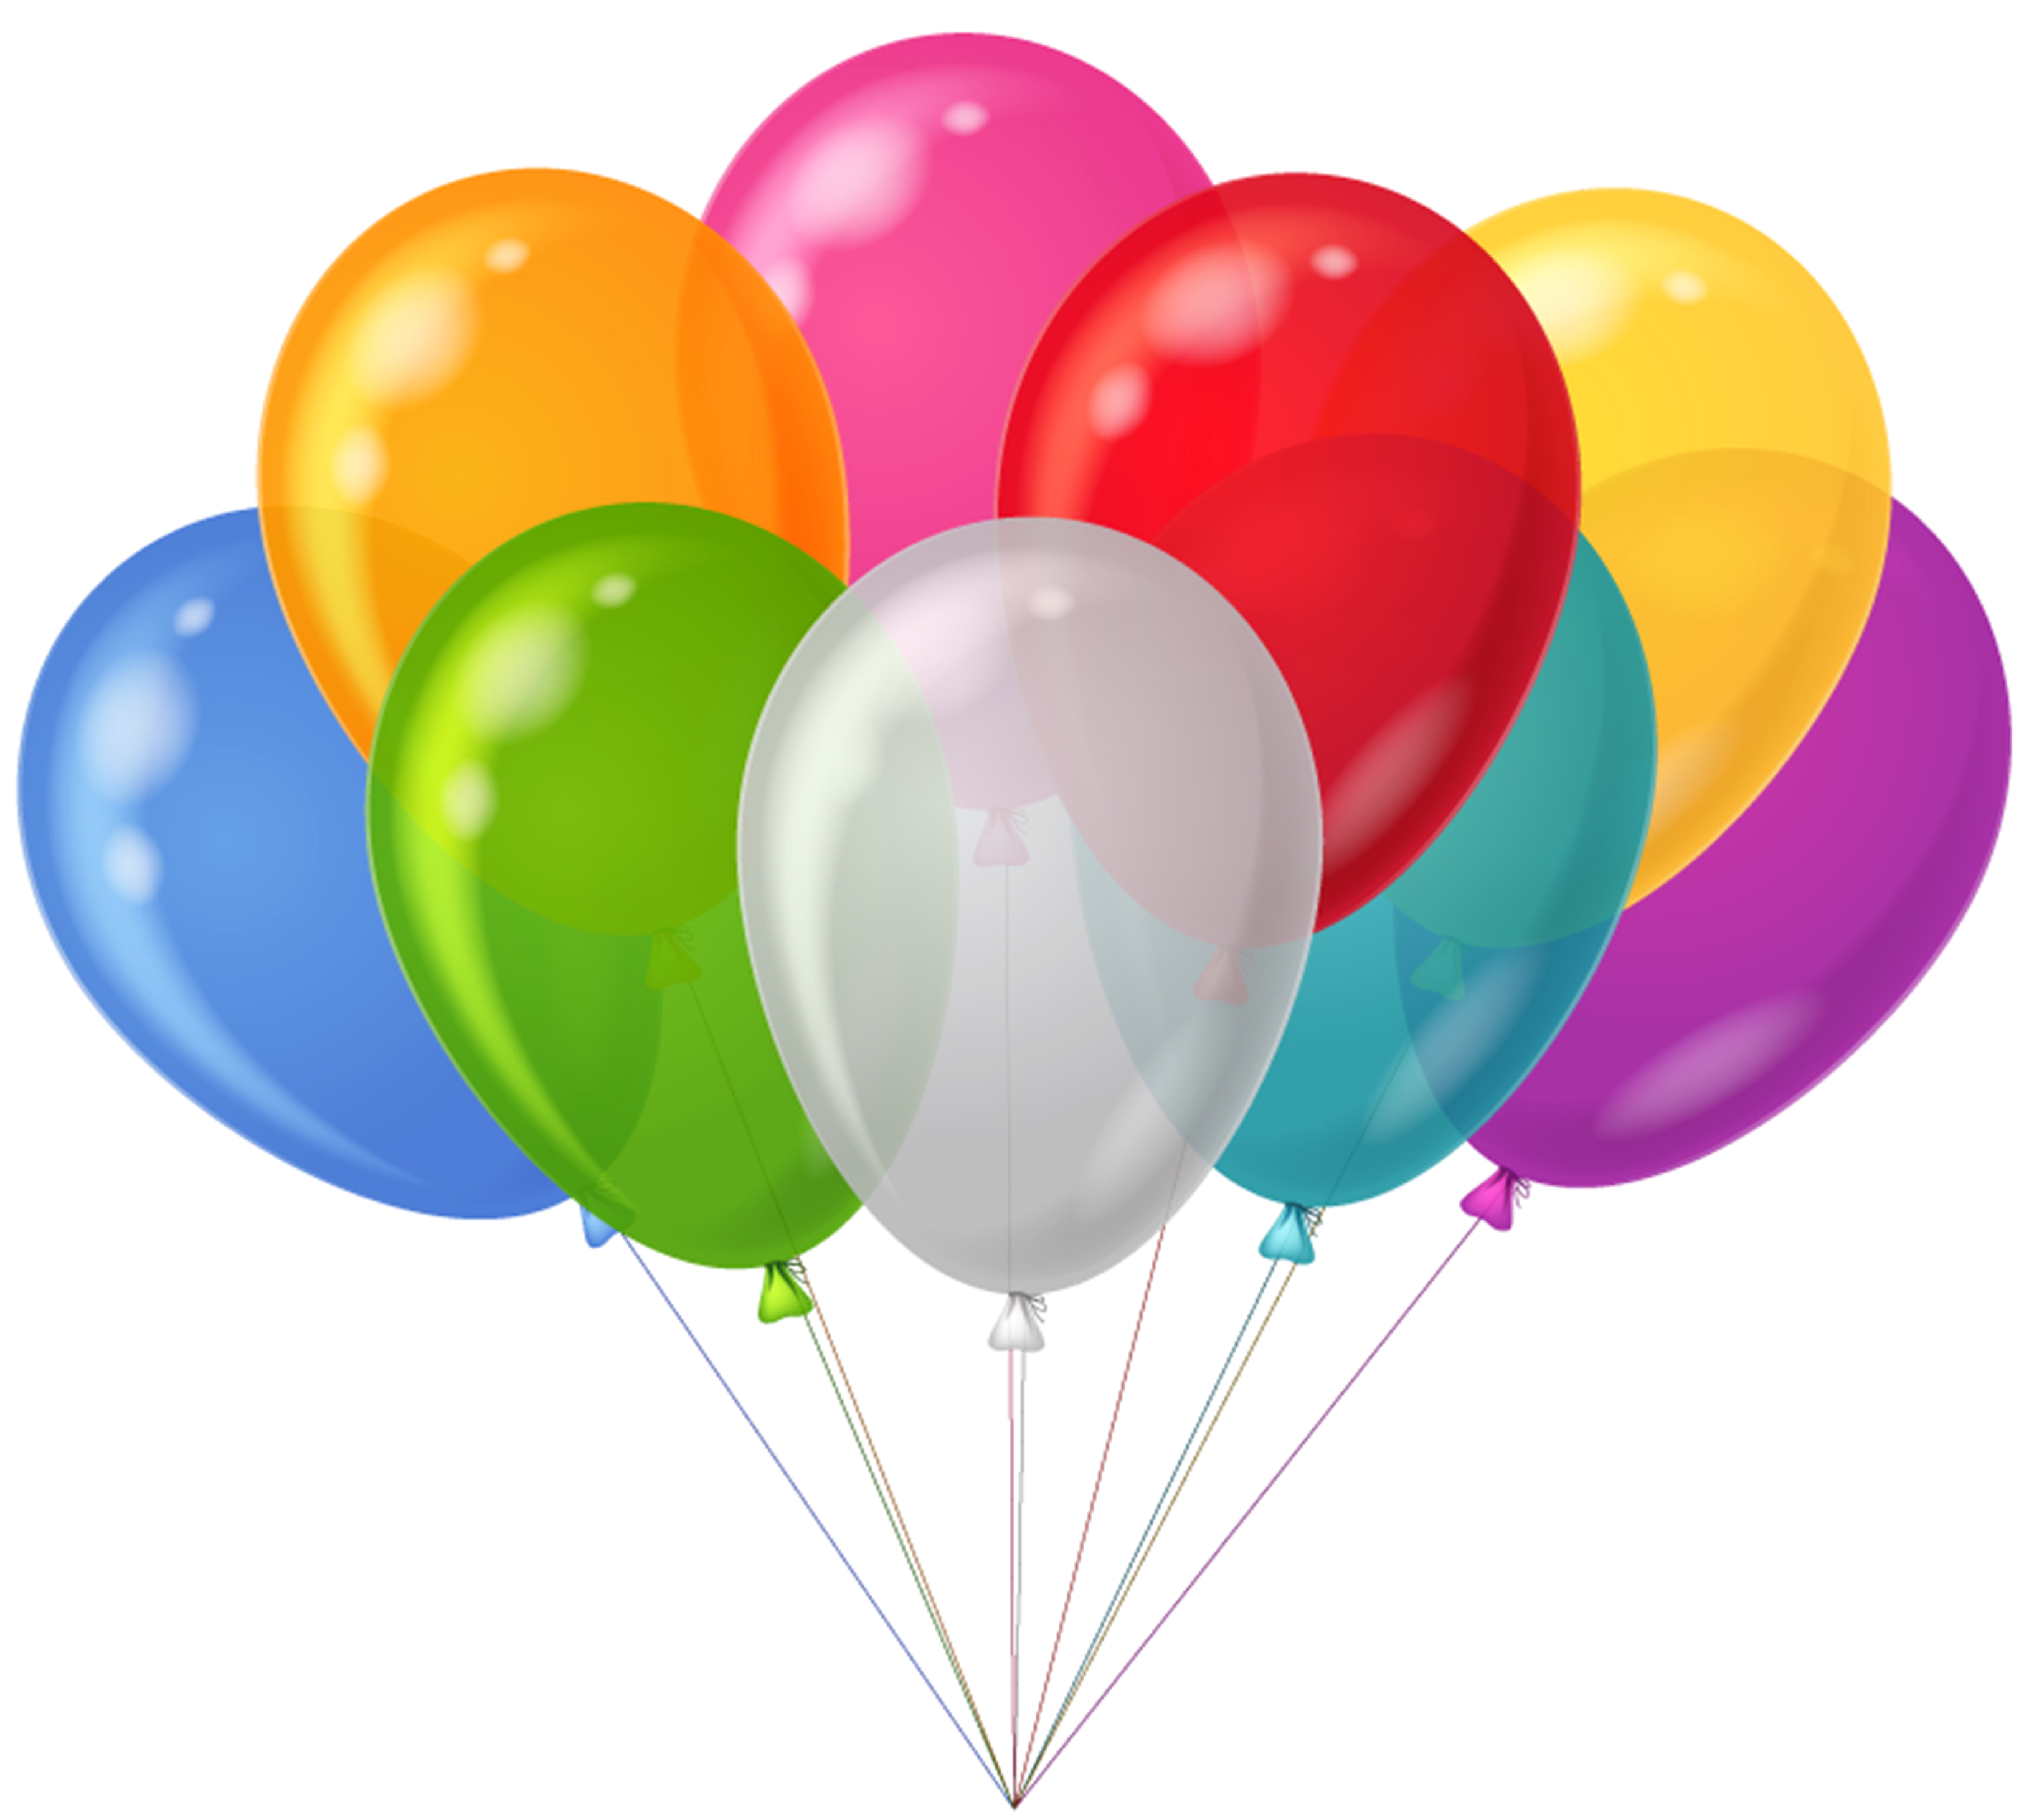 balloons clipart transparent background